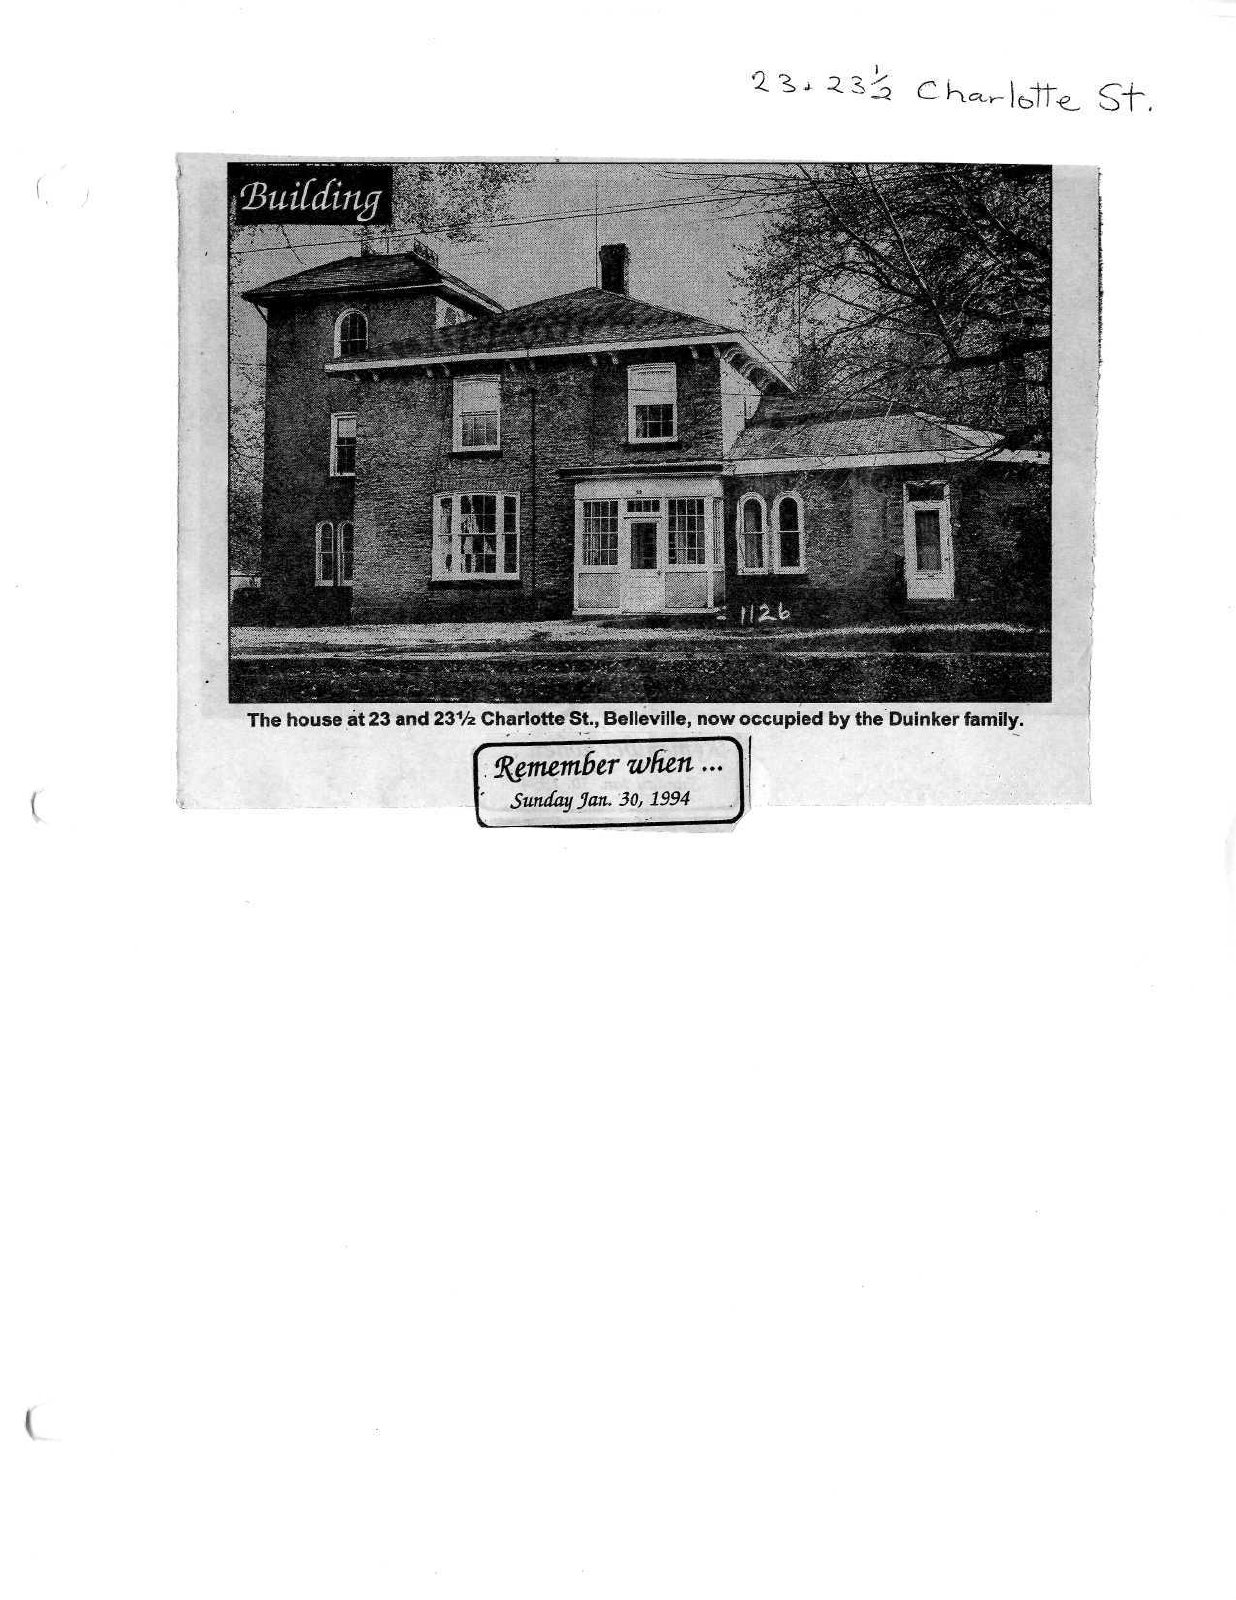 Remember when: 23 and 23 1/2 Charlotte St.  Stone house holds wonderful memories